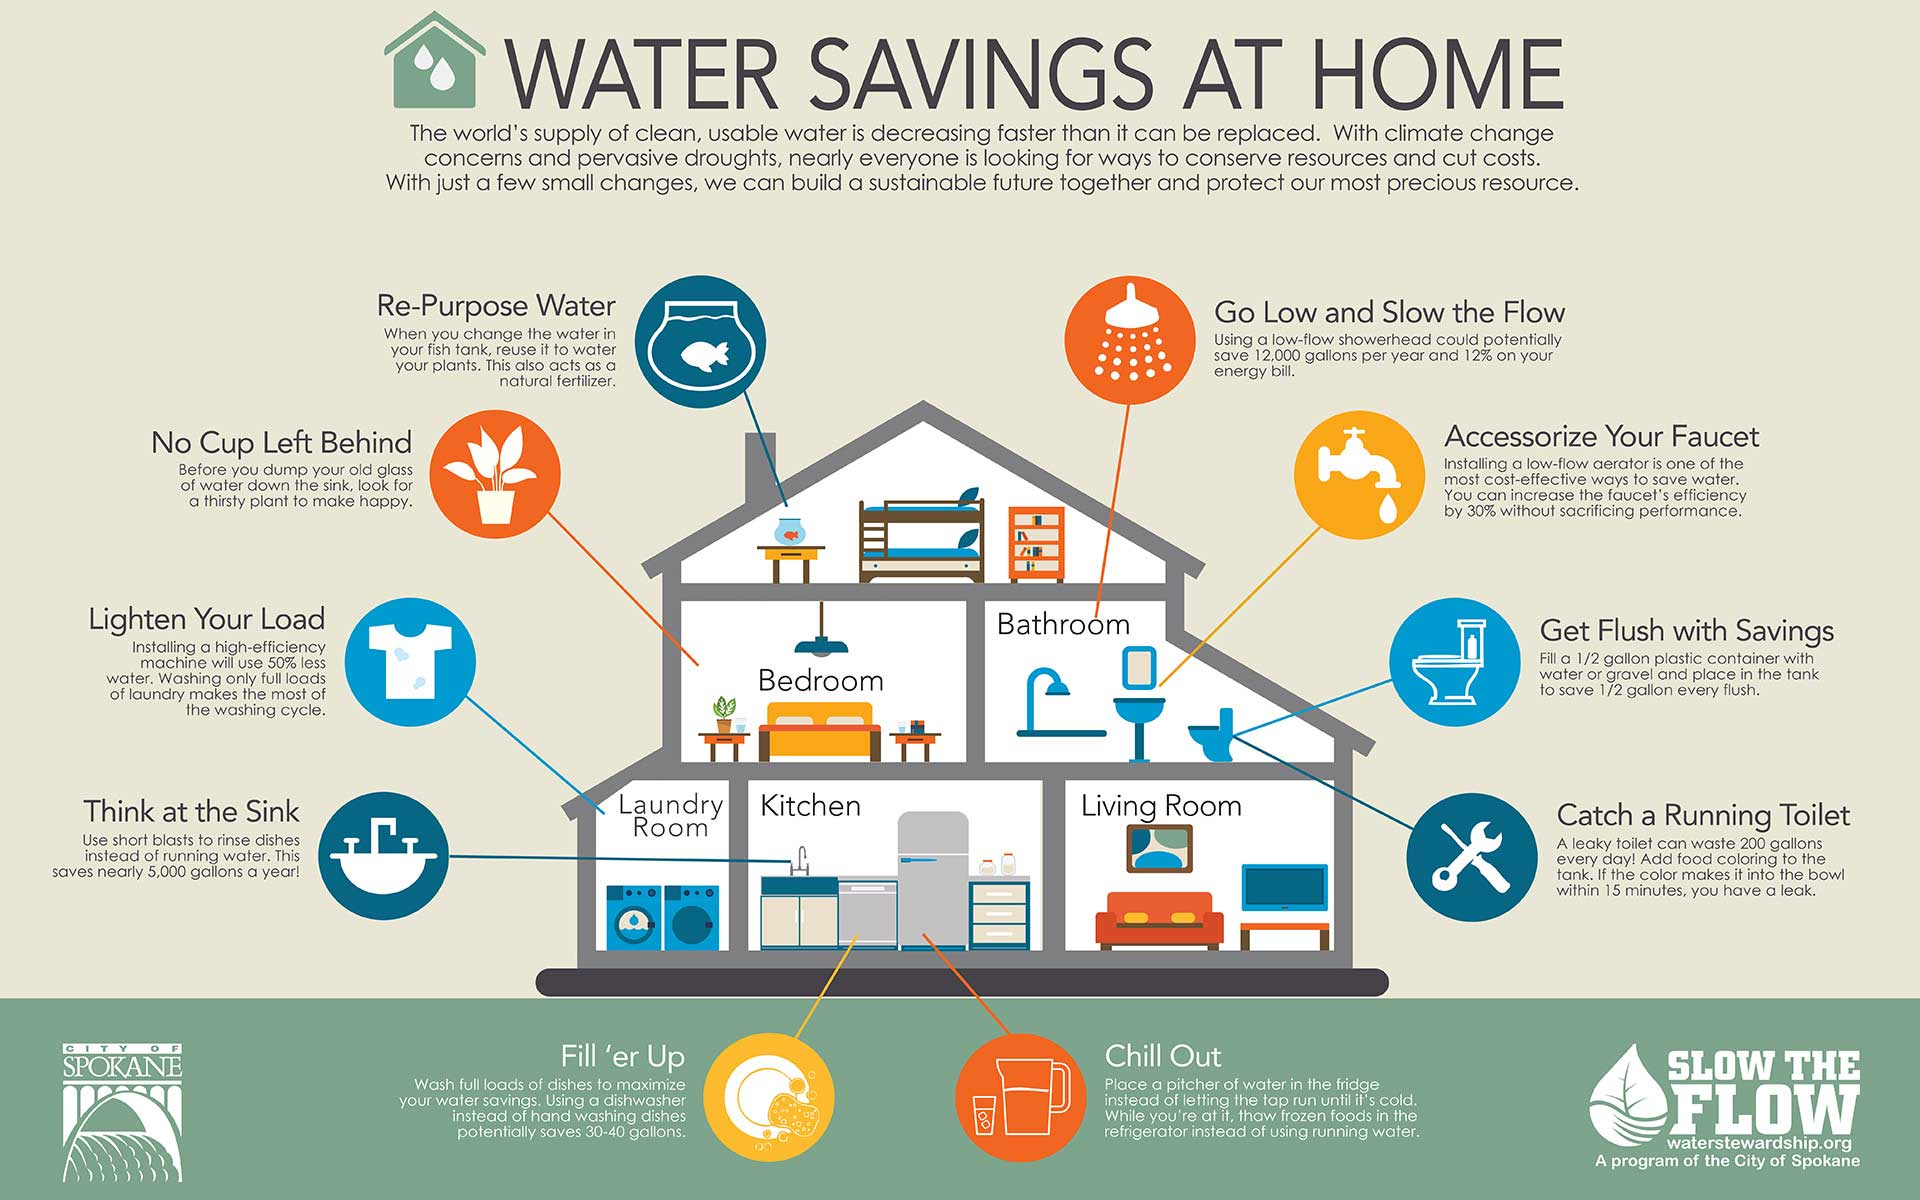 Water Savings at Home